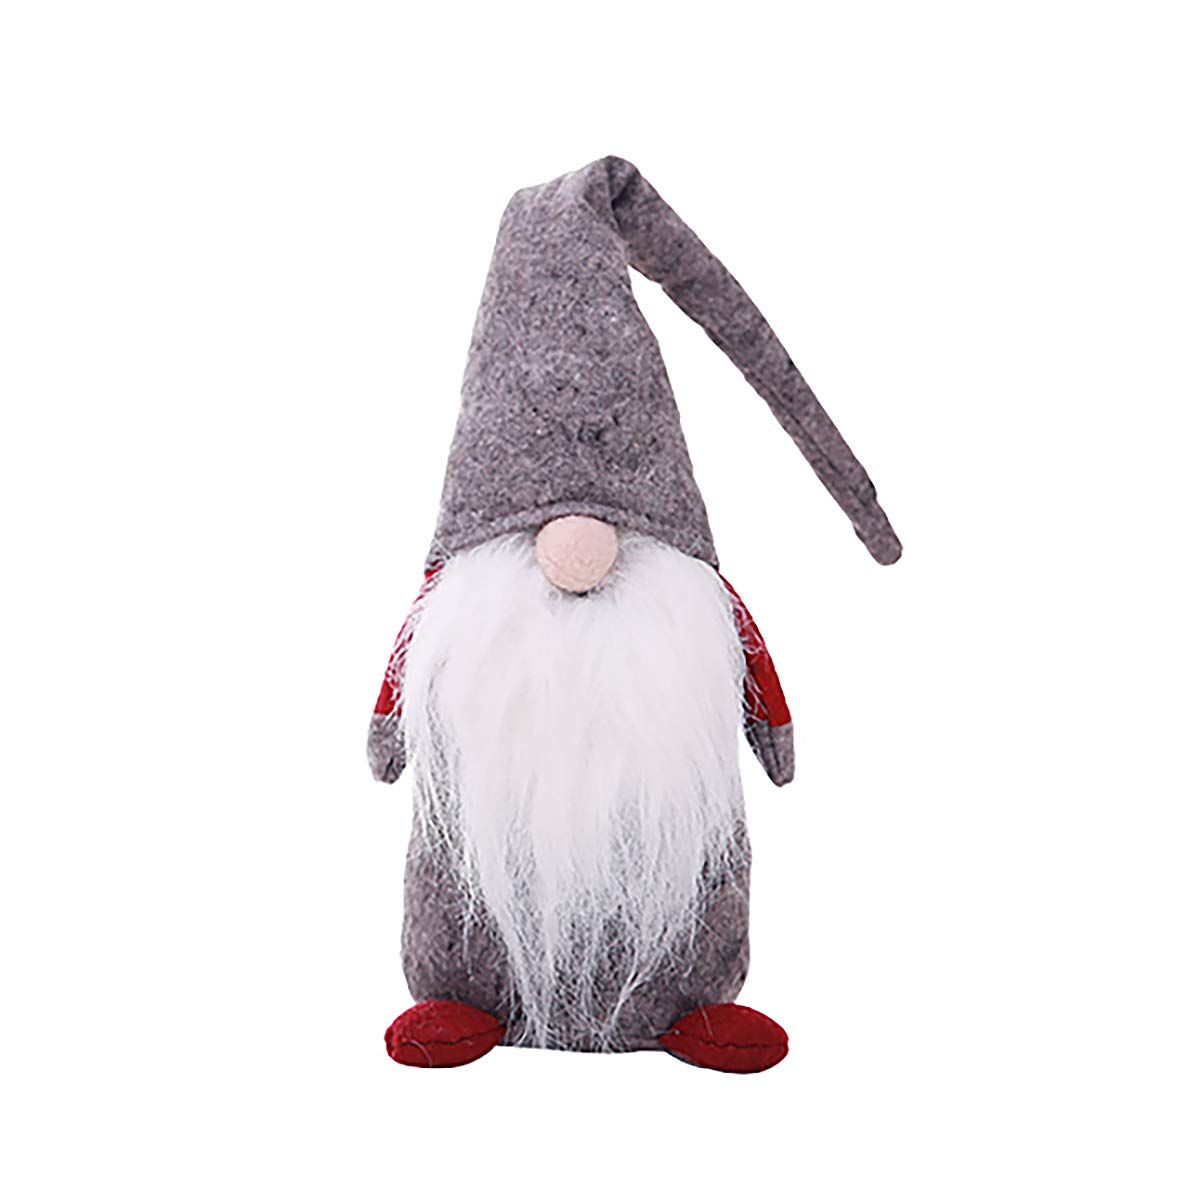 "Handmade Swedish Tomte Christmas Gnome, 19.7"" Well Crafted Christmas Ornaments Gifts Holiday Home Table Decor for Men, Women & Kids Wei Xi"